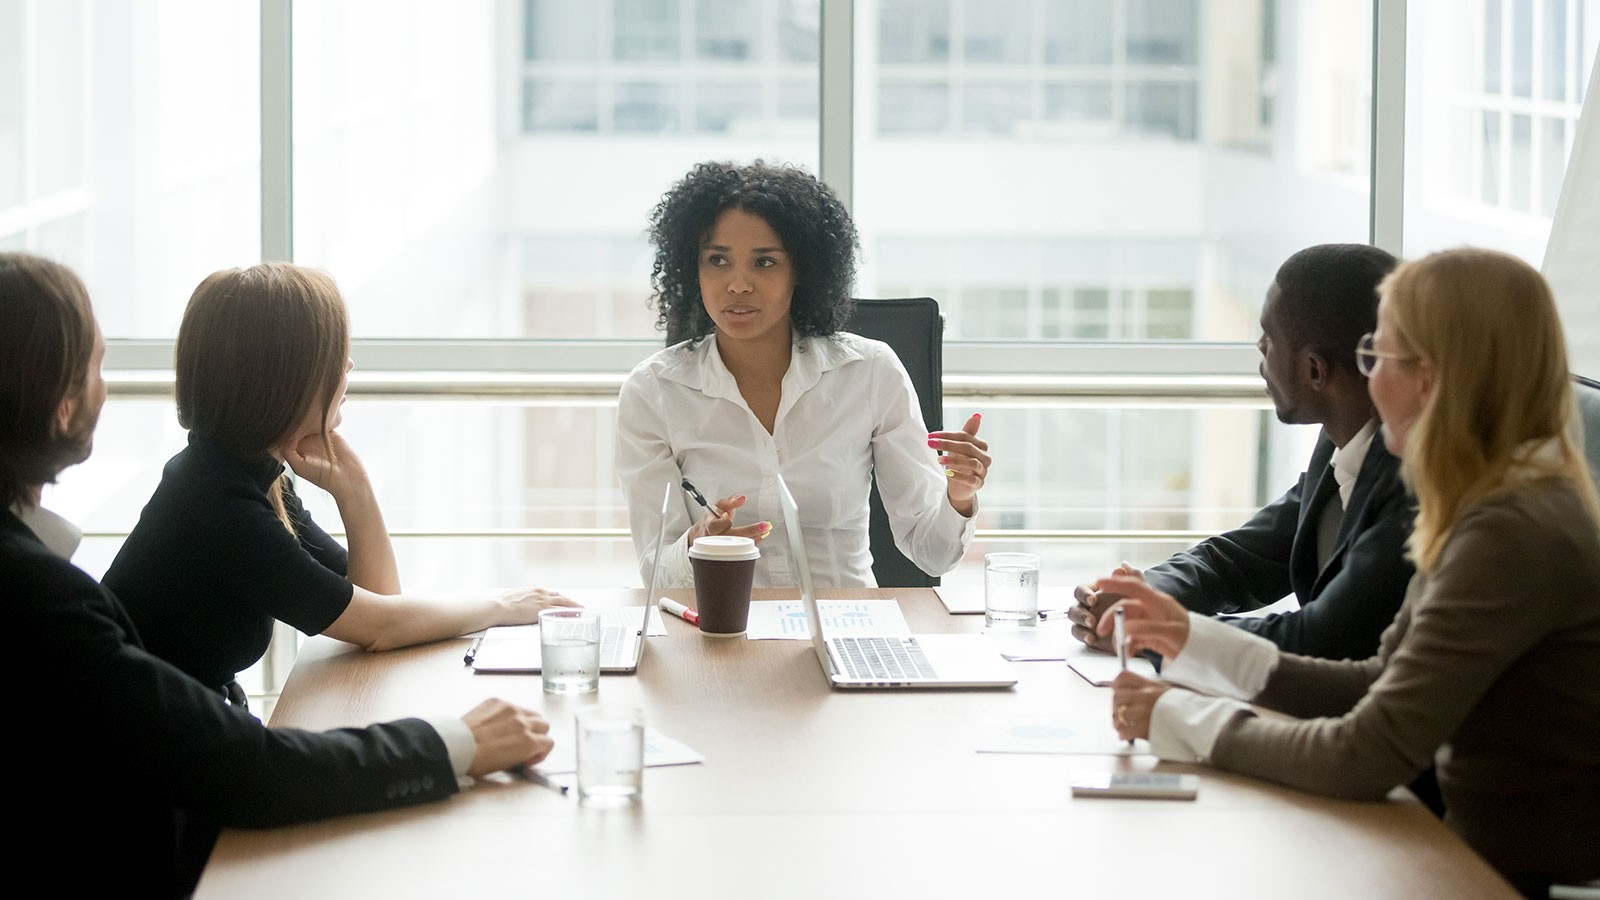 woman leading a meeting in a conference room.